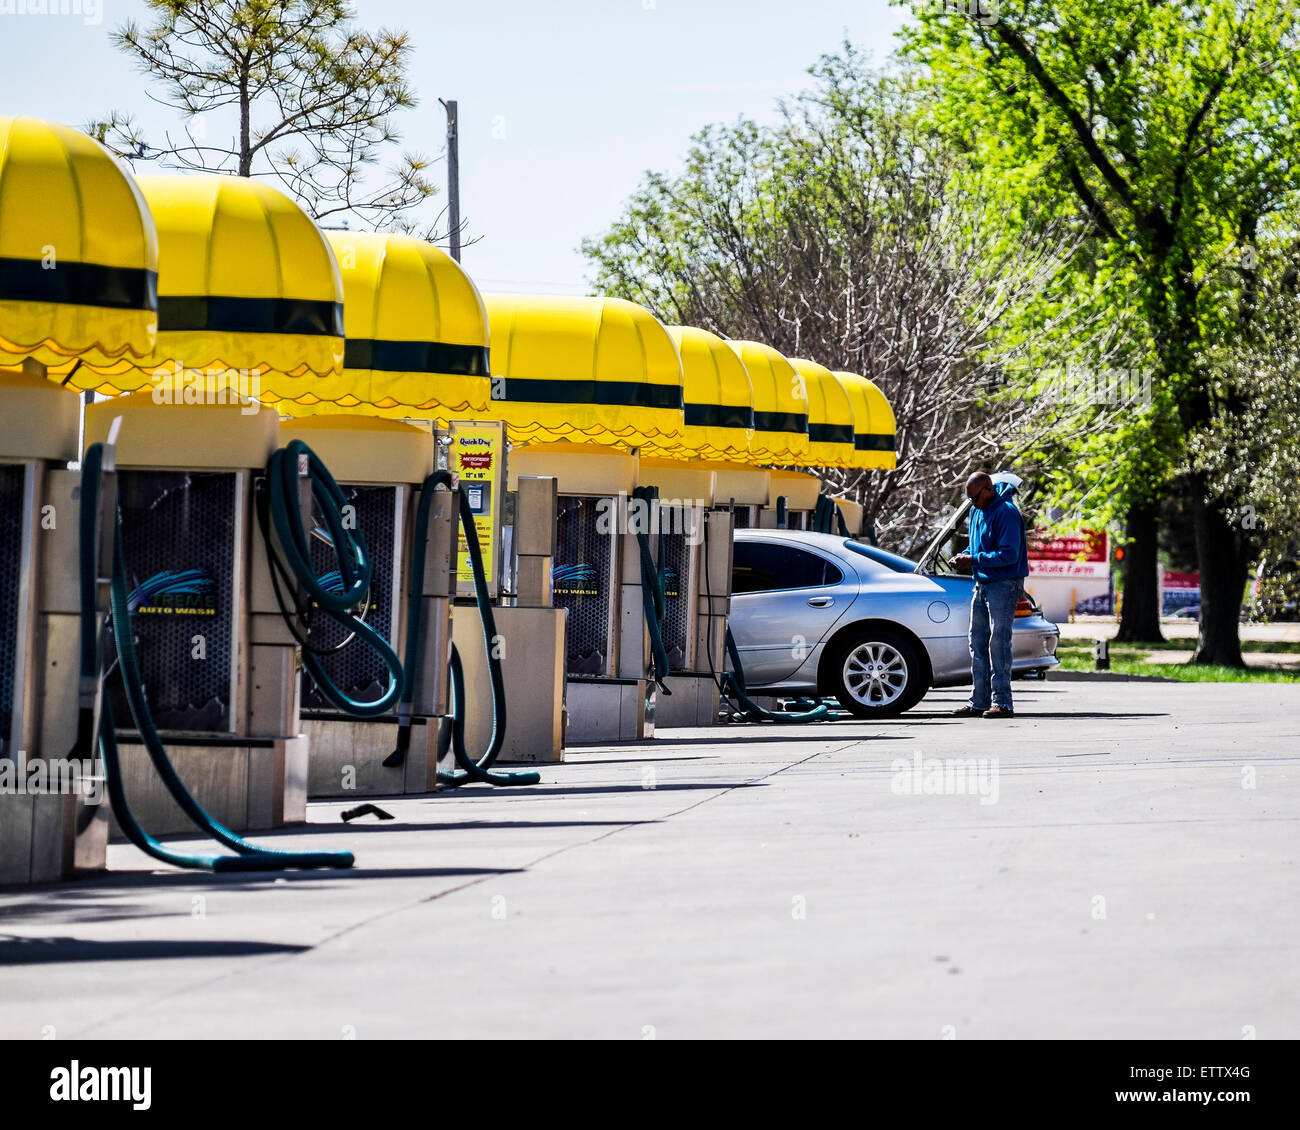 Automobile Vacuum Stations At A Car Wash Business In